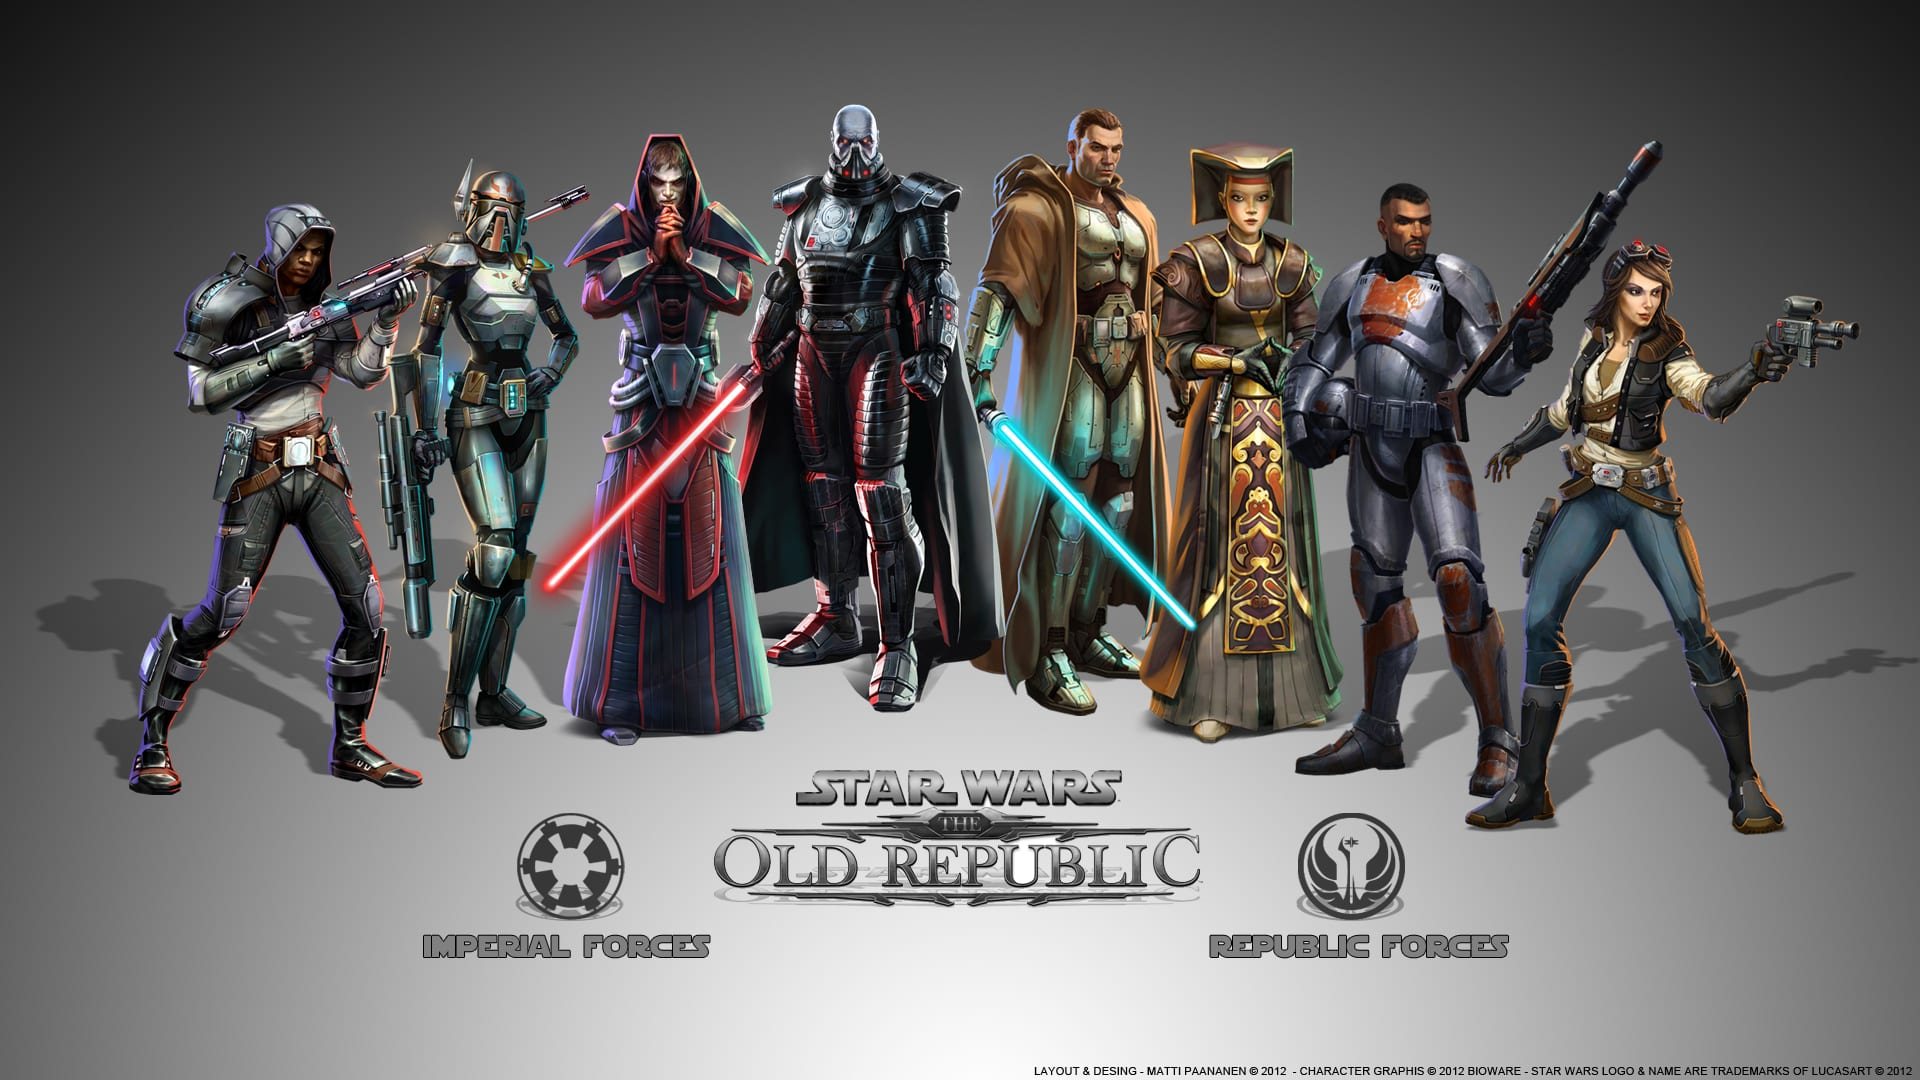 Classes-of-SWTOR-starwars-the-old-republic-37162196-1920-1080